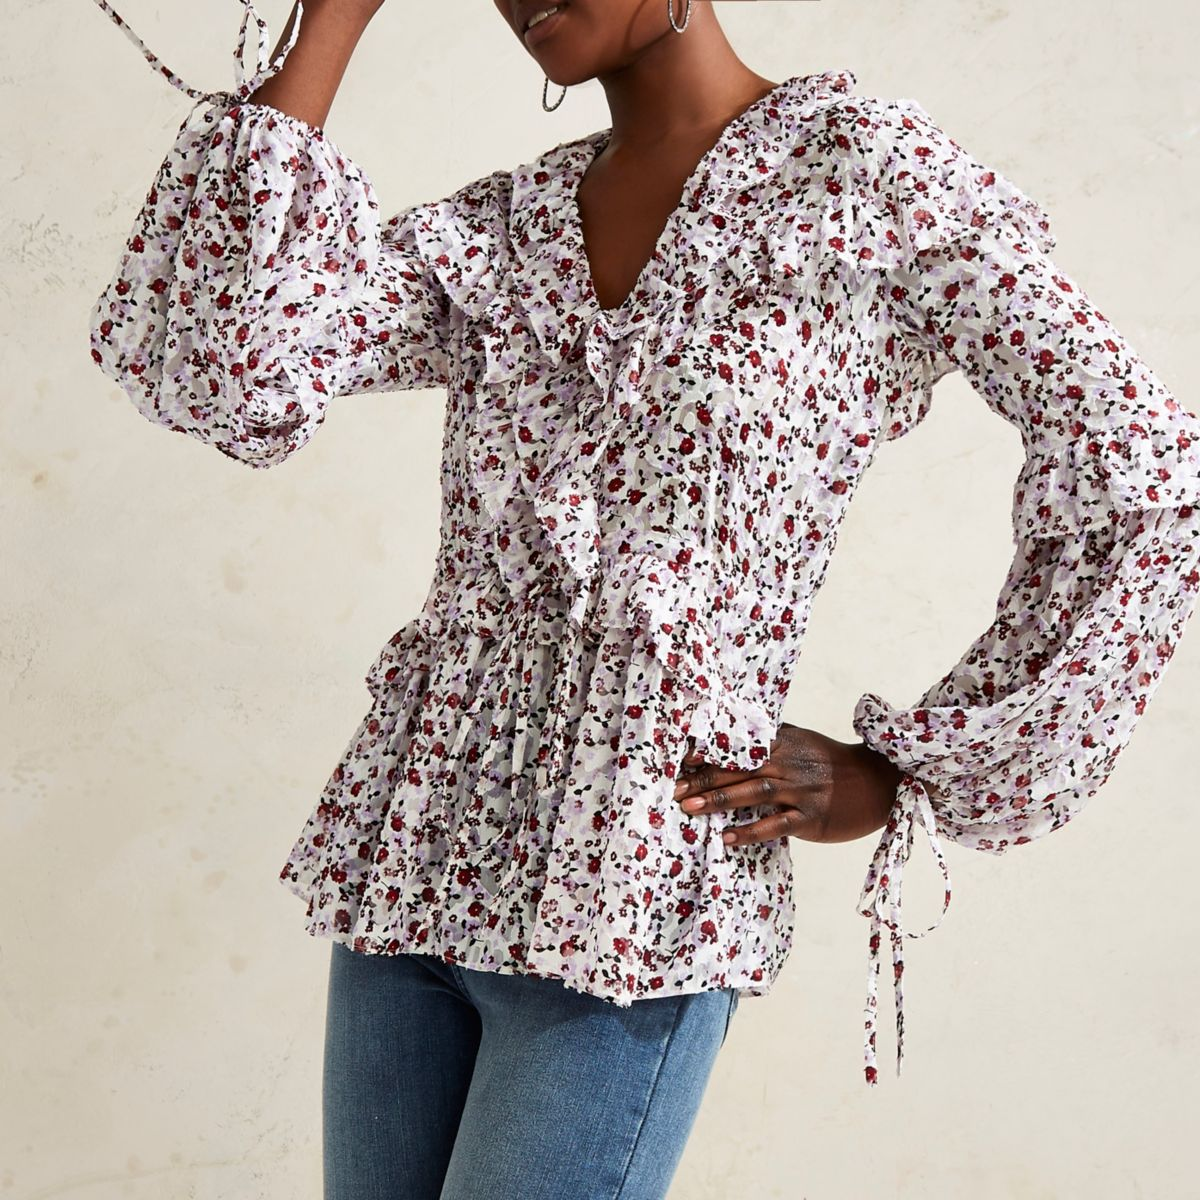 Purple RI Studio floral frill blouse